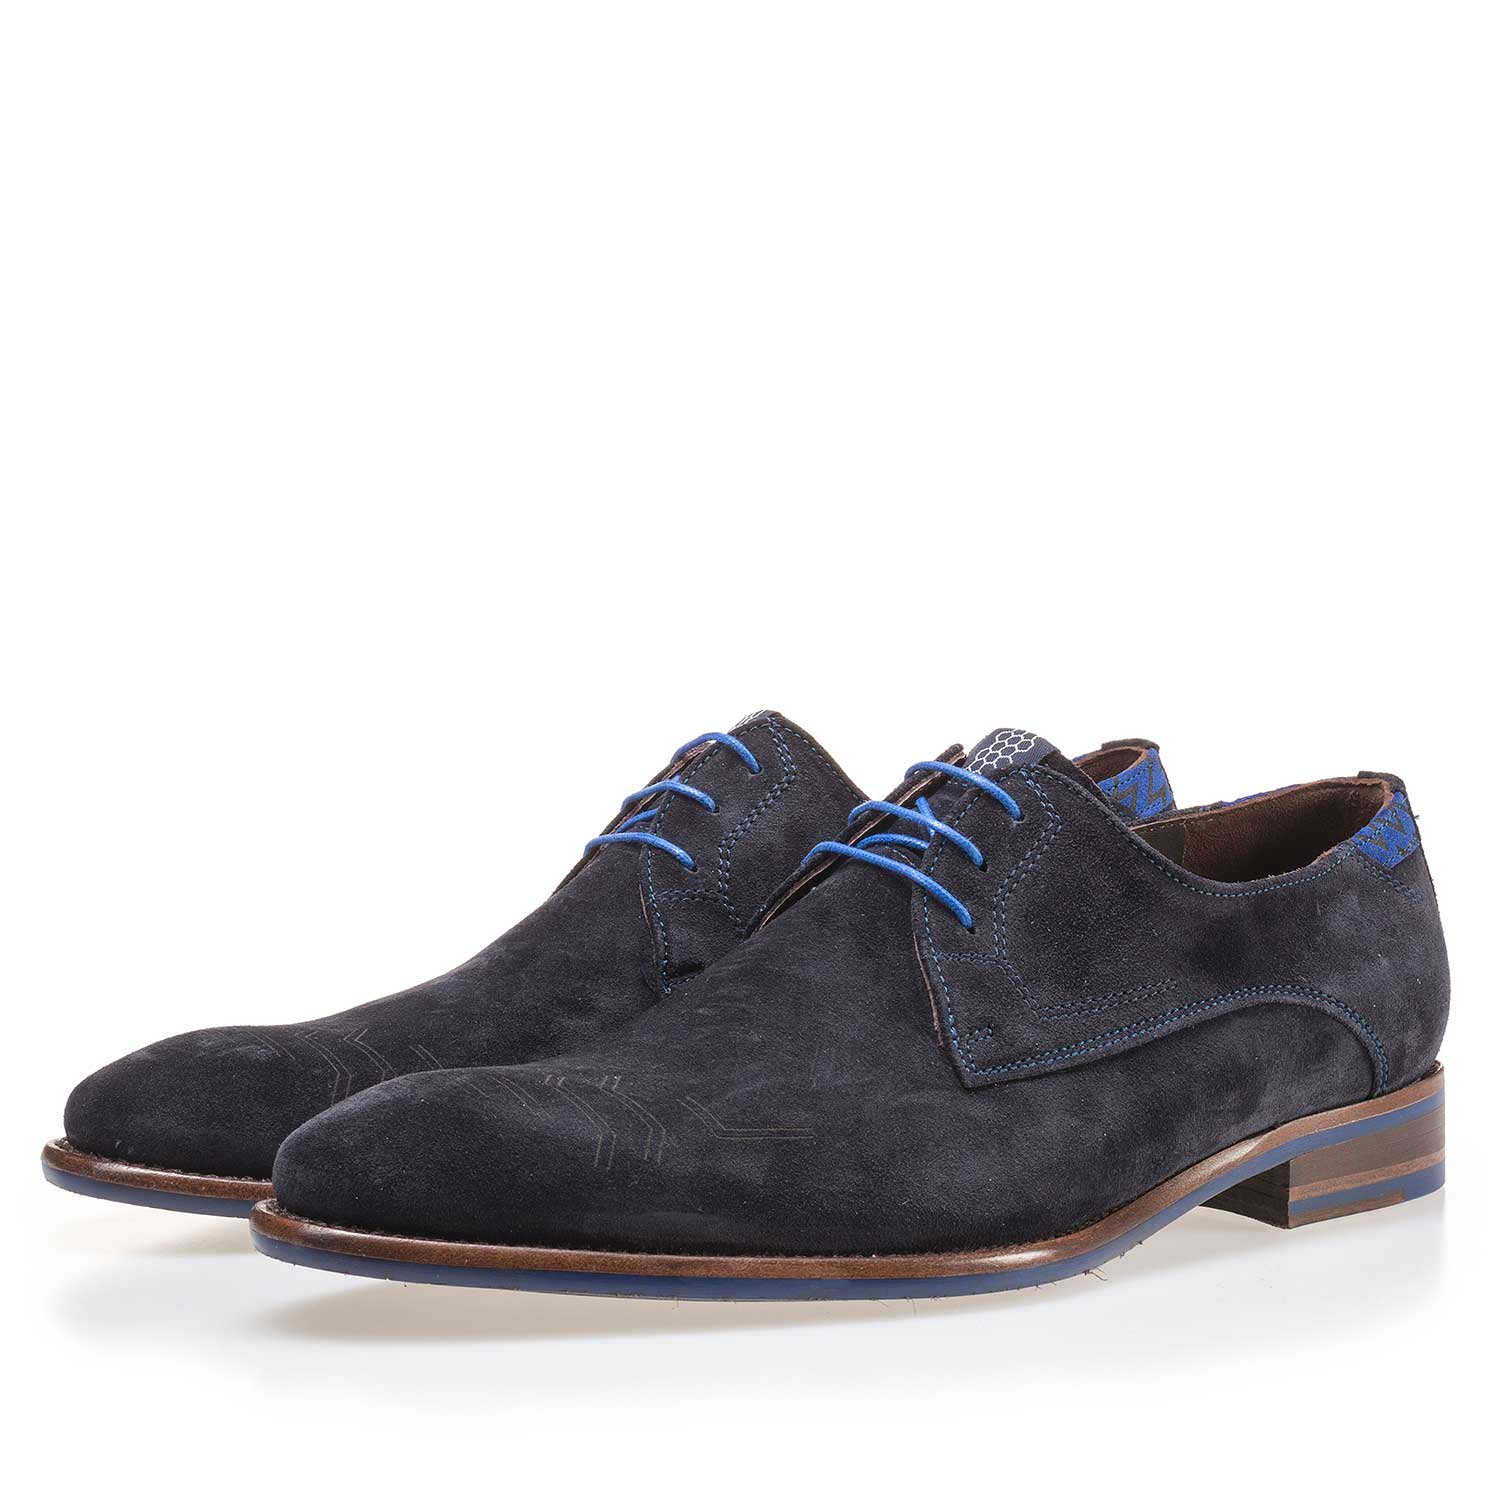 14092/03 - Dark blue suede leather lace shoe